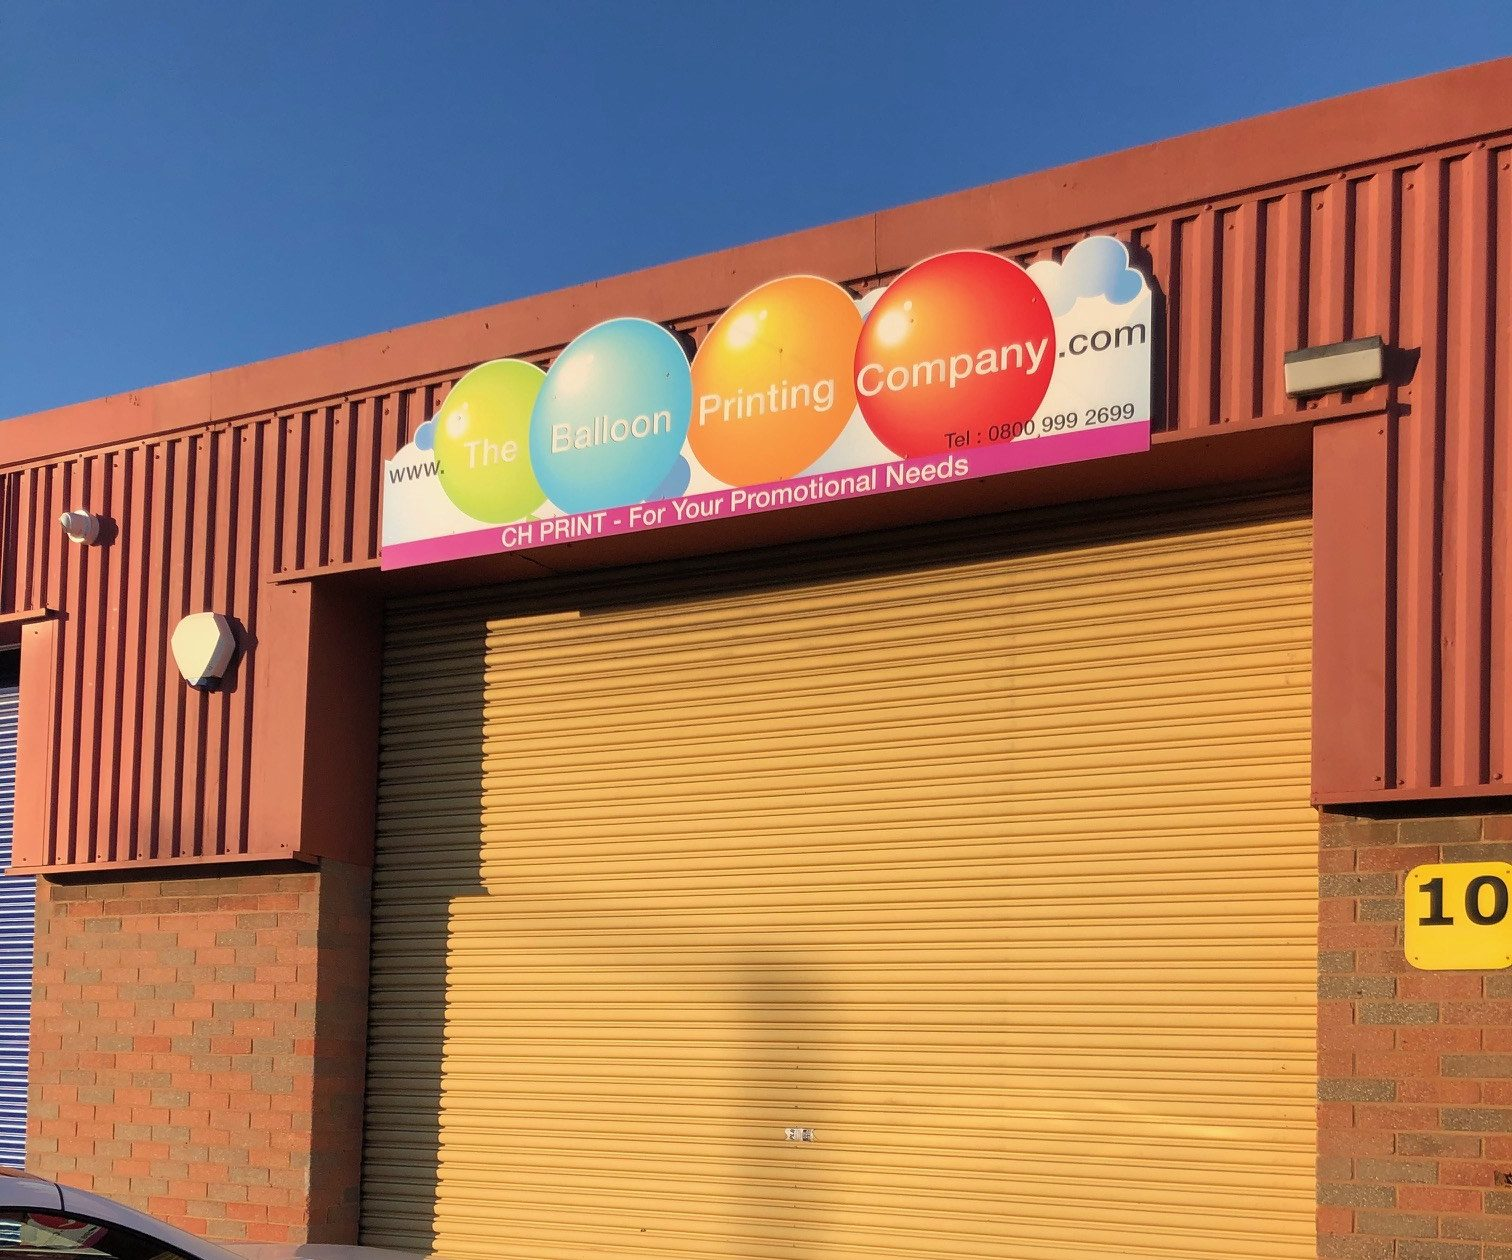 Balloon Printing Company Entrance